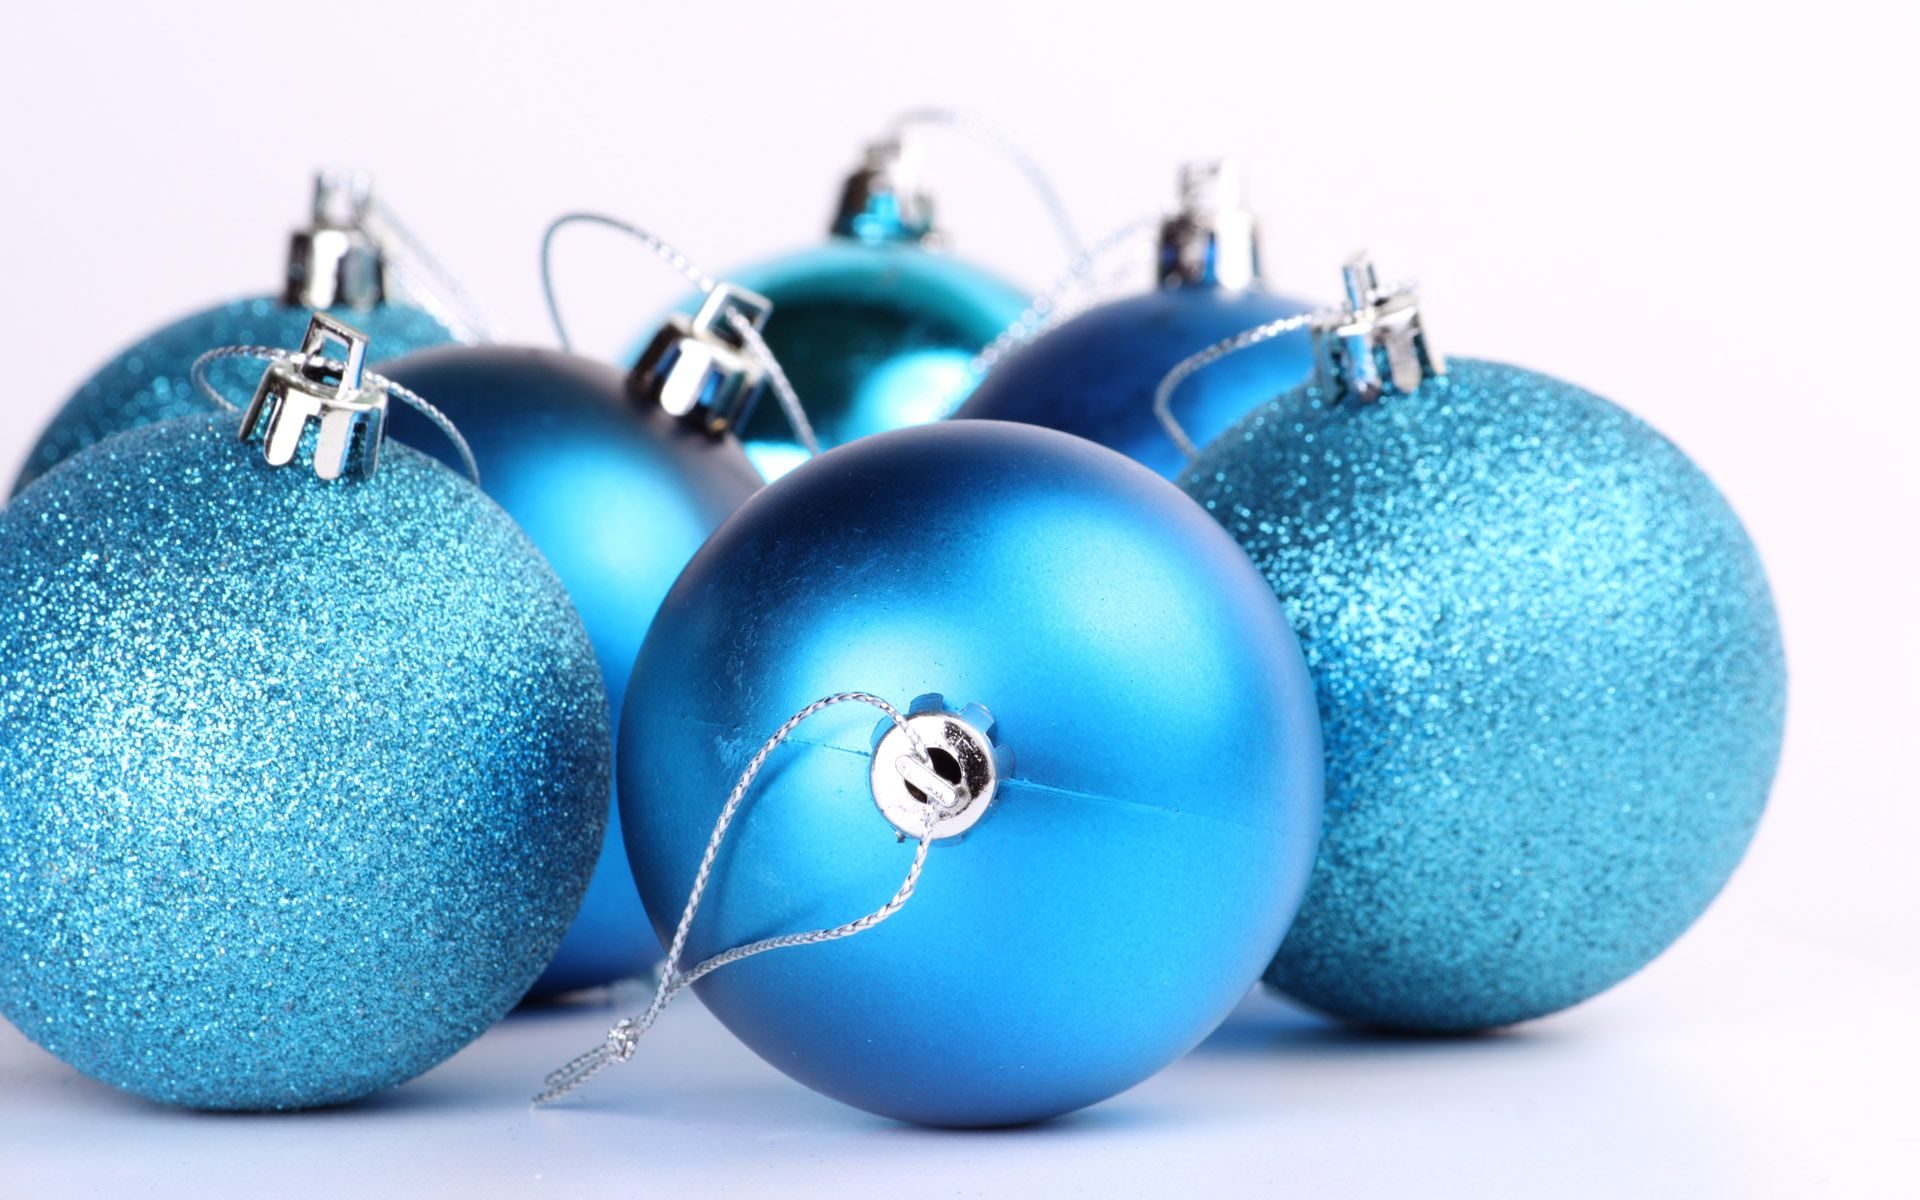 blue christmas decorations bing images - Blue Christmas Decorations